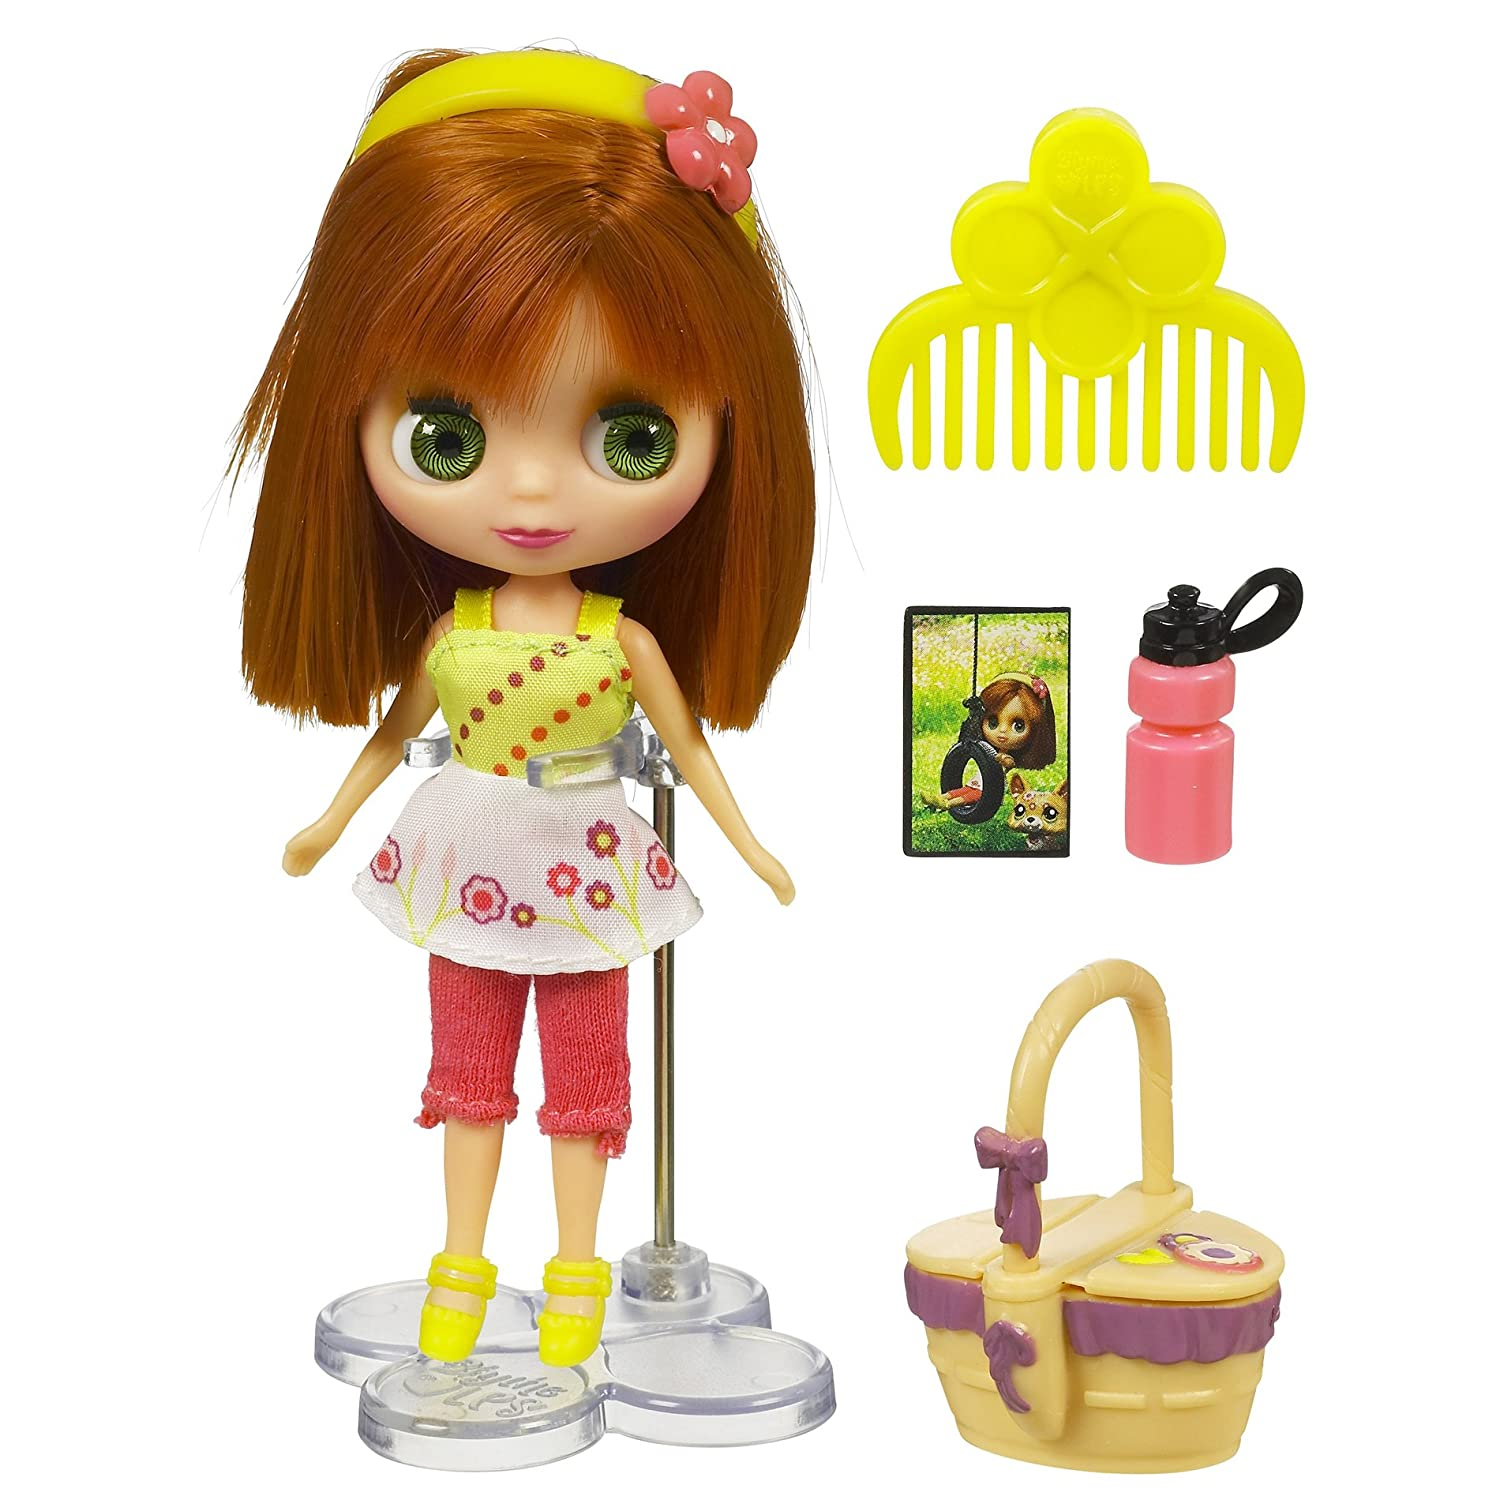 Fashion, Character, Play Dolls Lps Blythe Doll